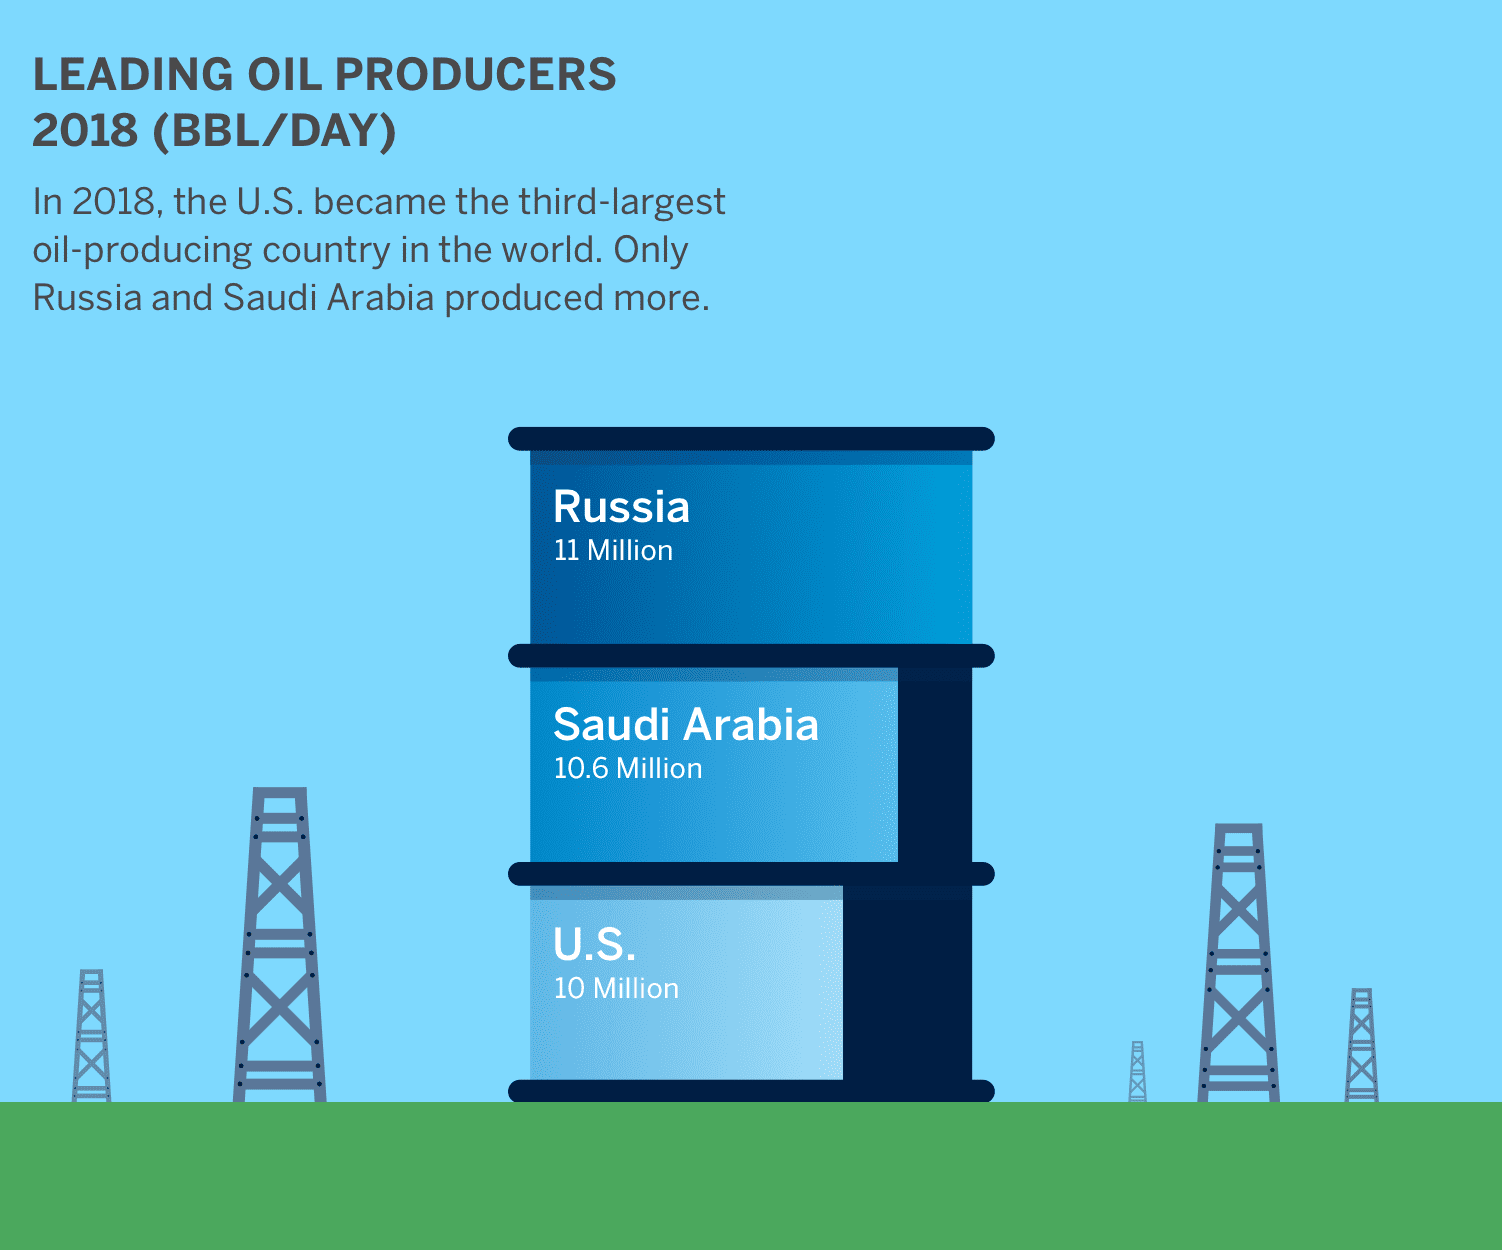 Did you know: In 2014, the U.S. became the third-largest oil-producing country in the world. Only Russia and Saudi Arabia produced more.